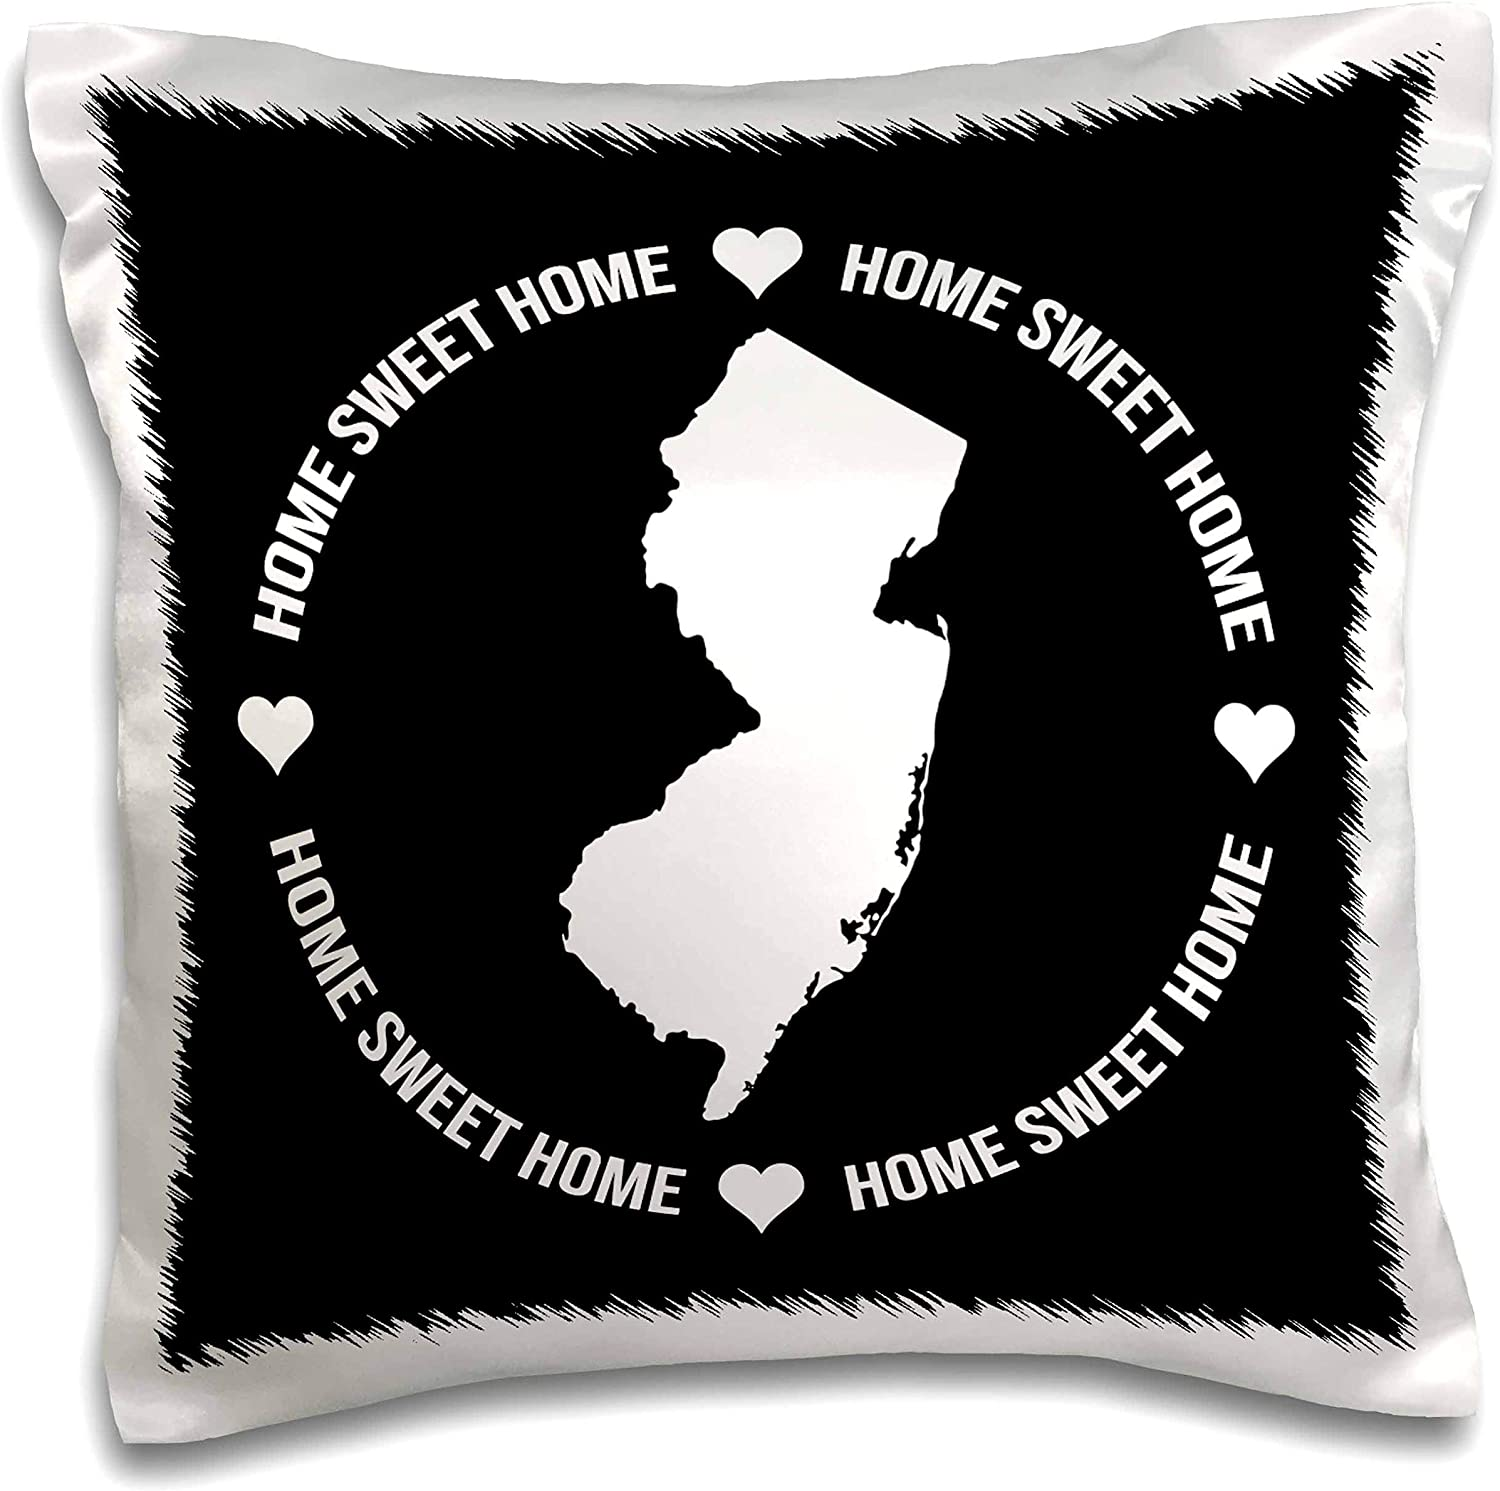 3dRose Stamp City - typography - New Jersey inside a circle of Home Sweet Home and hearts on black. - 16x16 inch Pillow Case (pc_324148_1)